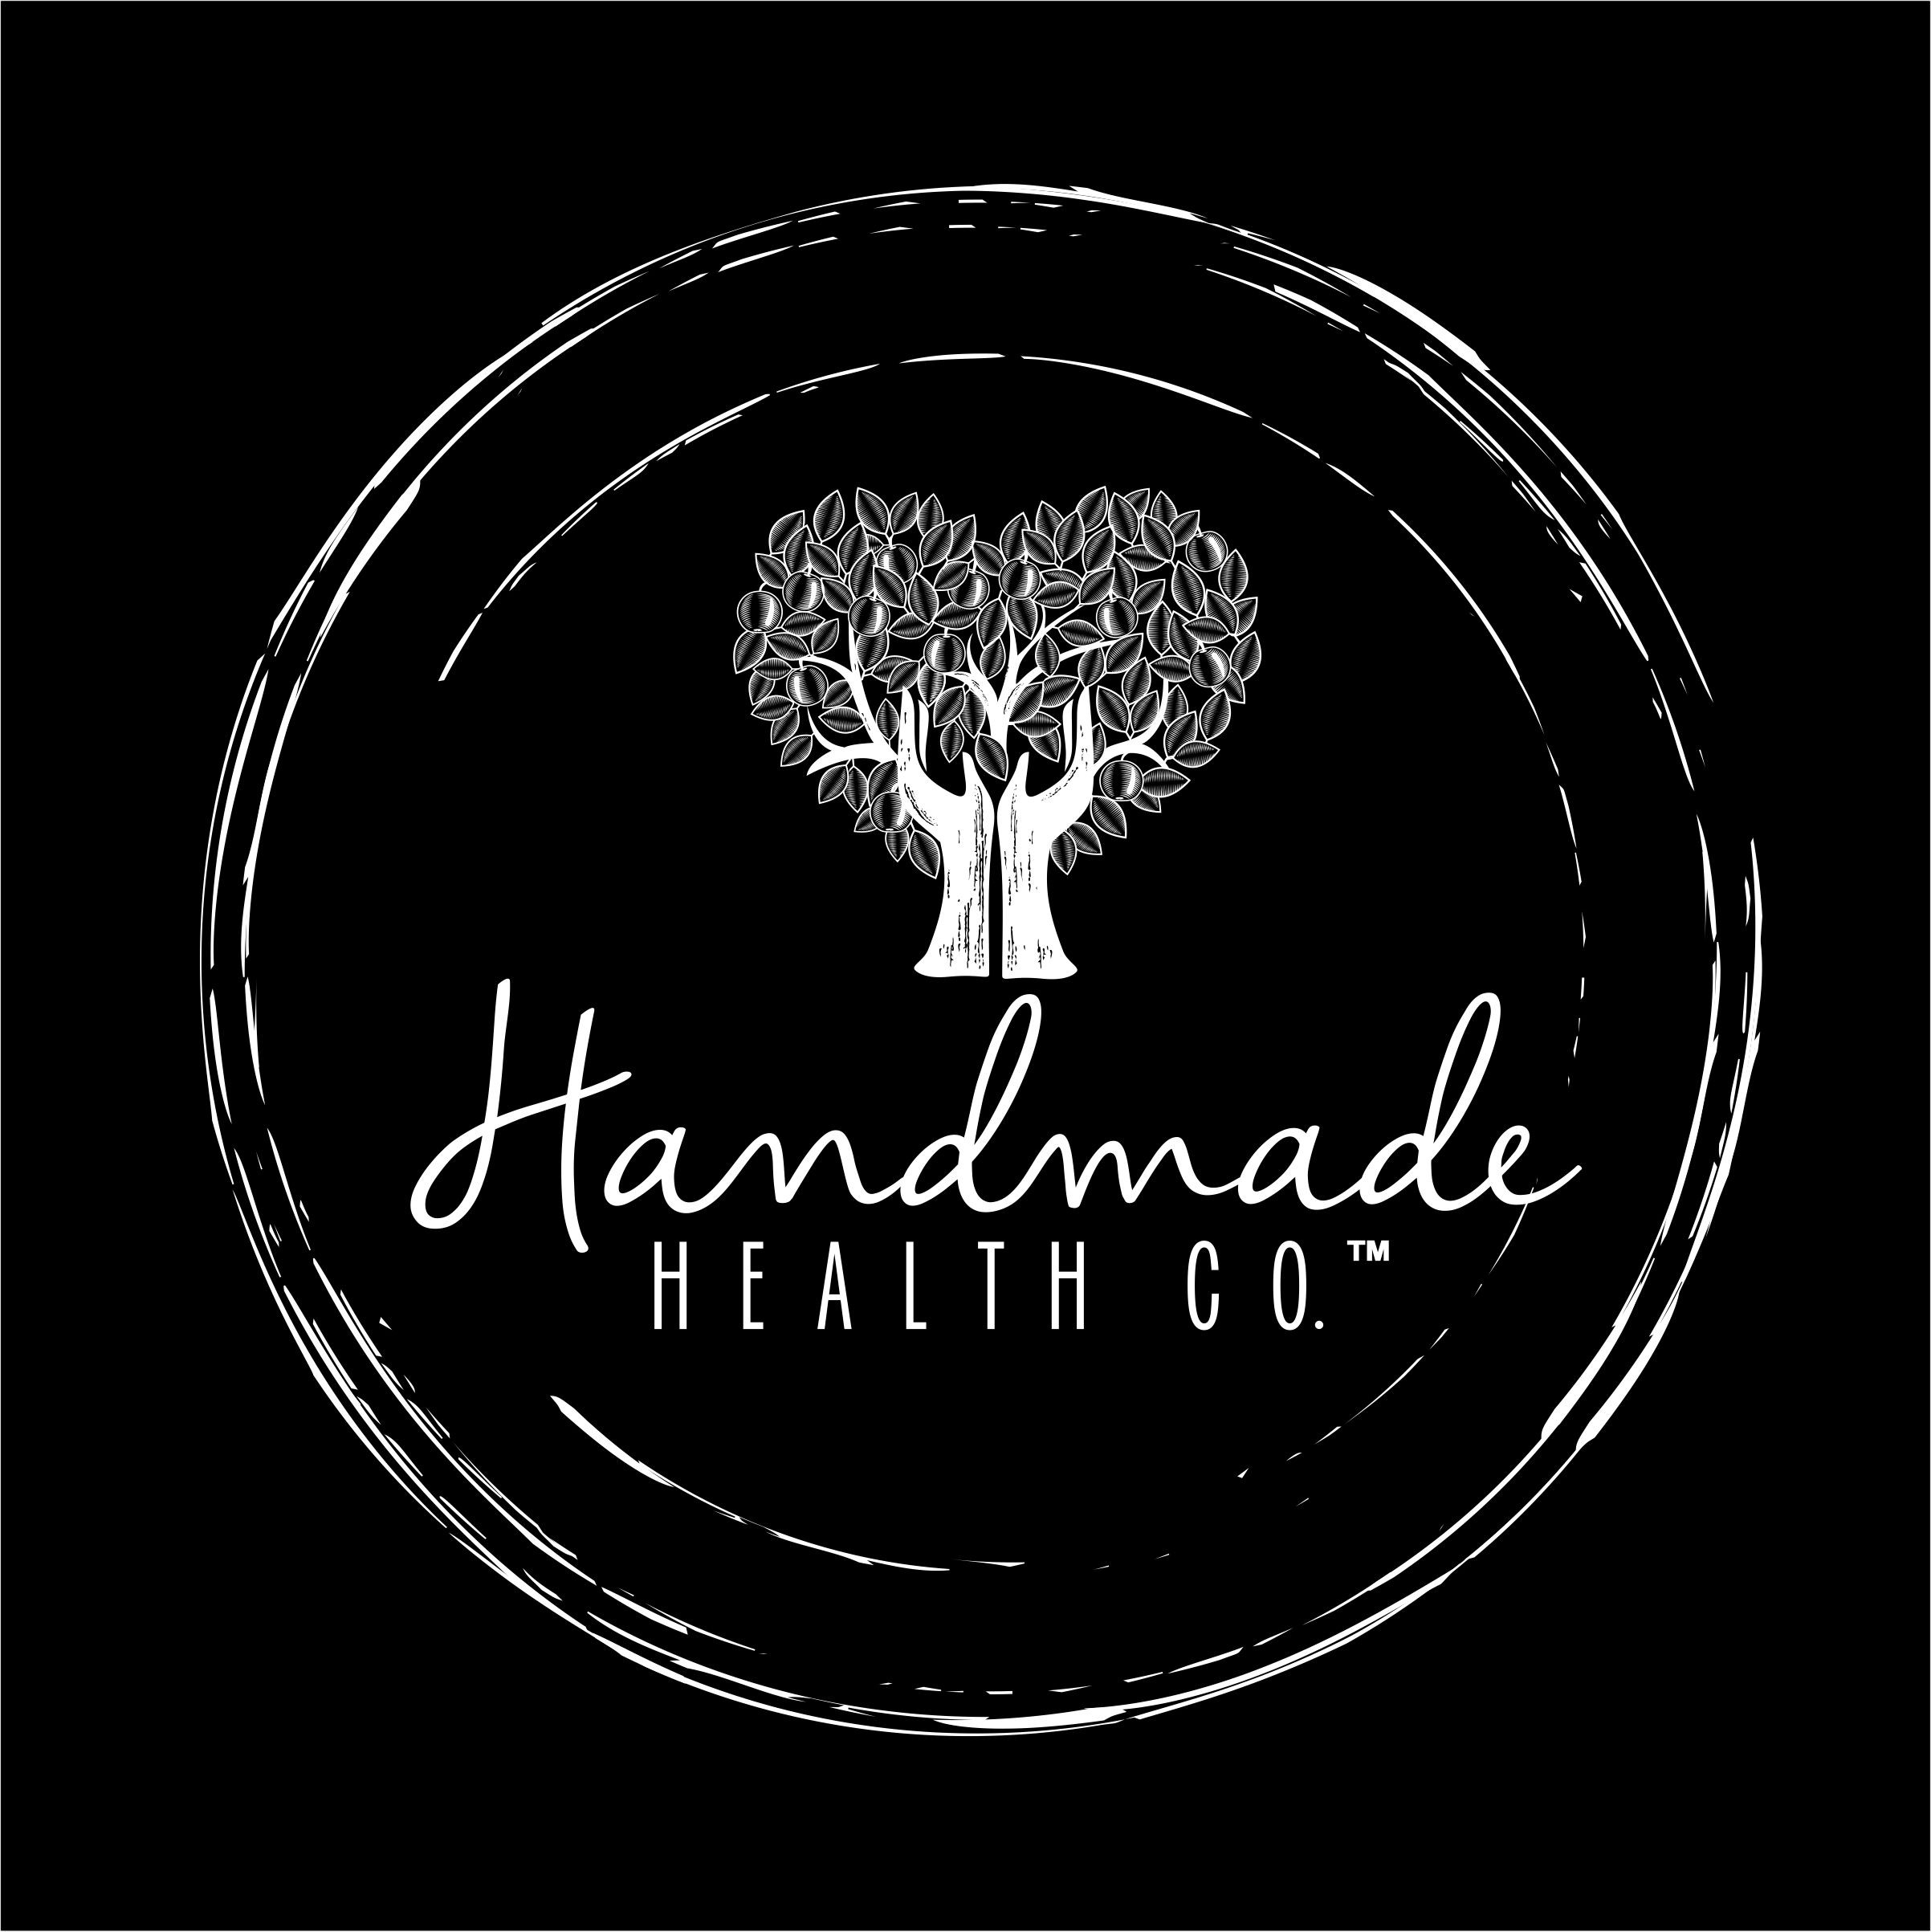 Handmade Health Co.